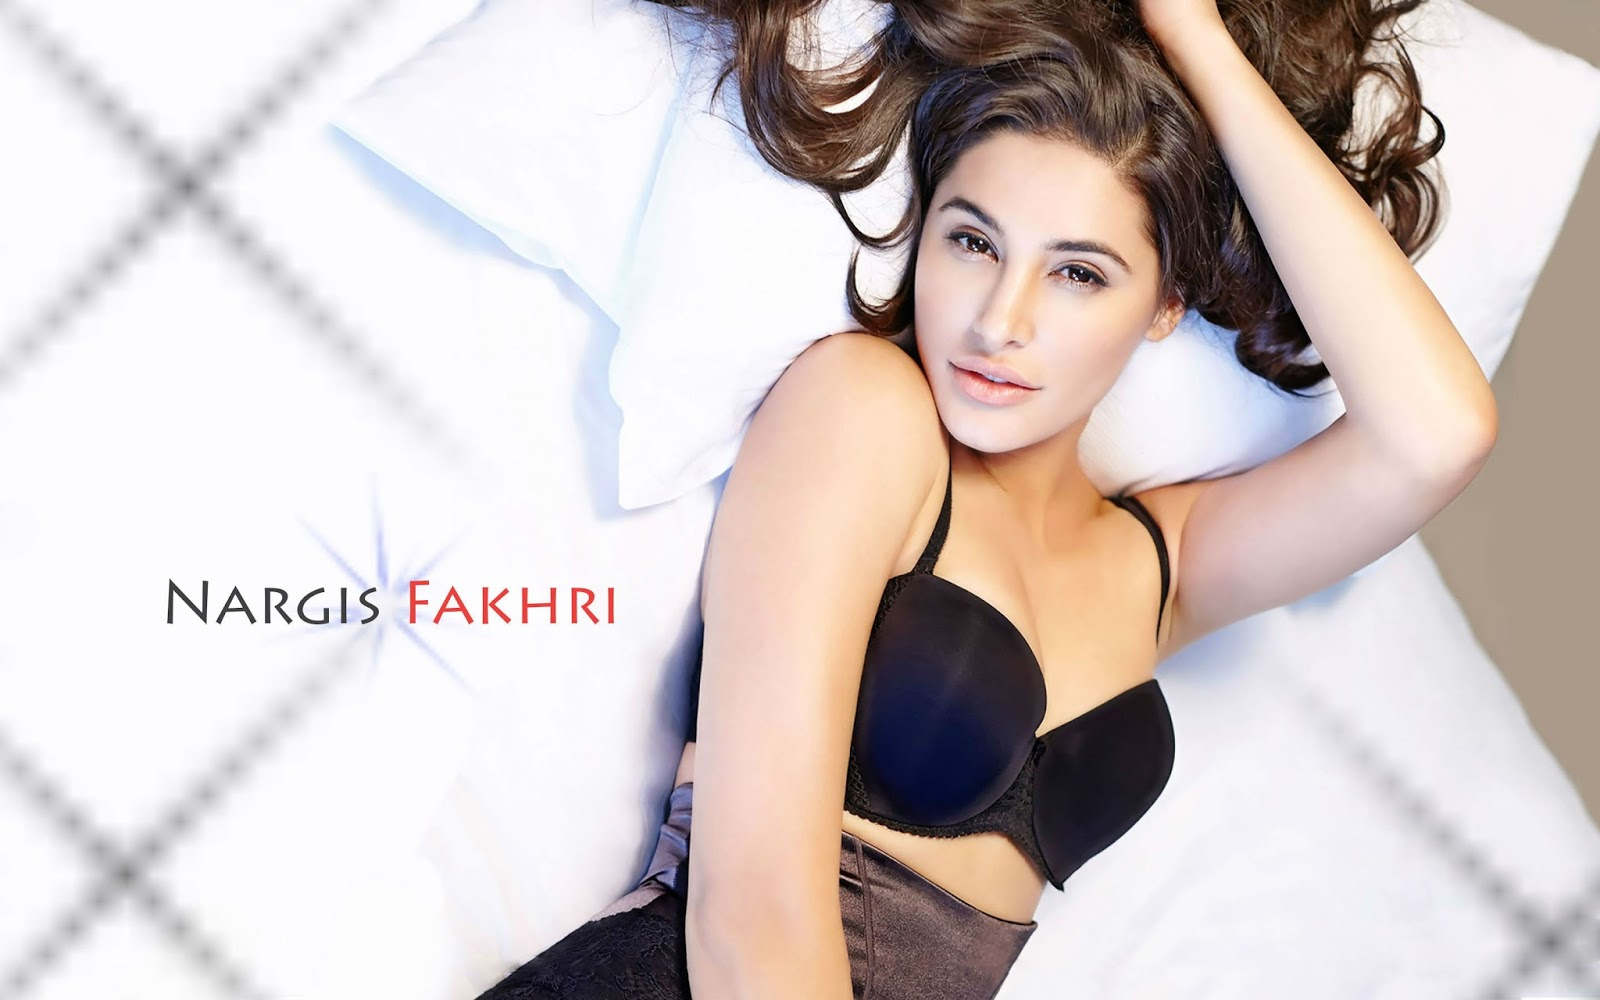 50 best nargis fakhri hd wallpapers & latest images collection 2017